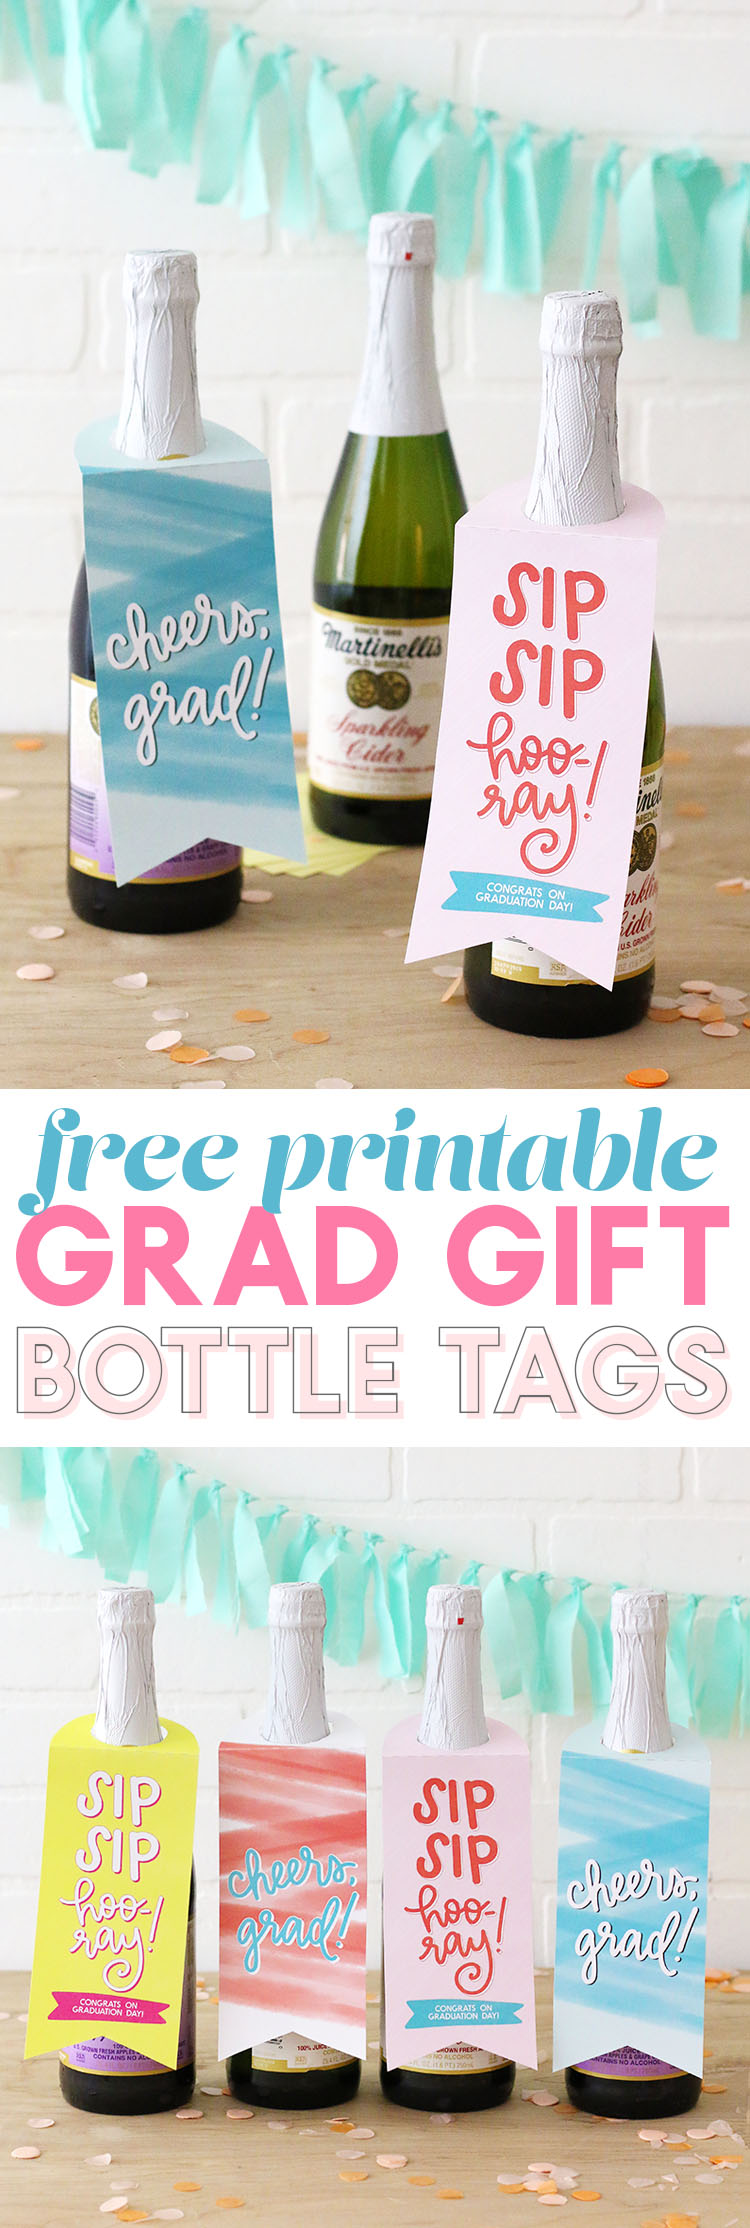 grad gift idea - free printable bottle tags for graduates - so cute on a bottle of sparkling cider - Cheers, grad!